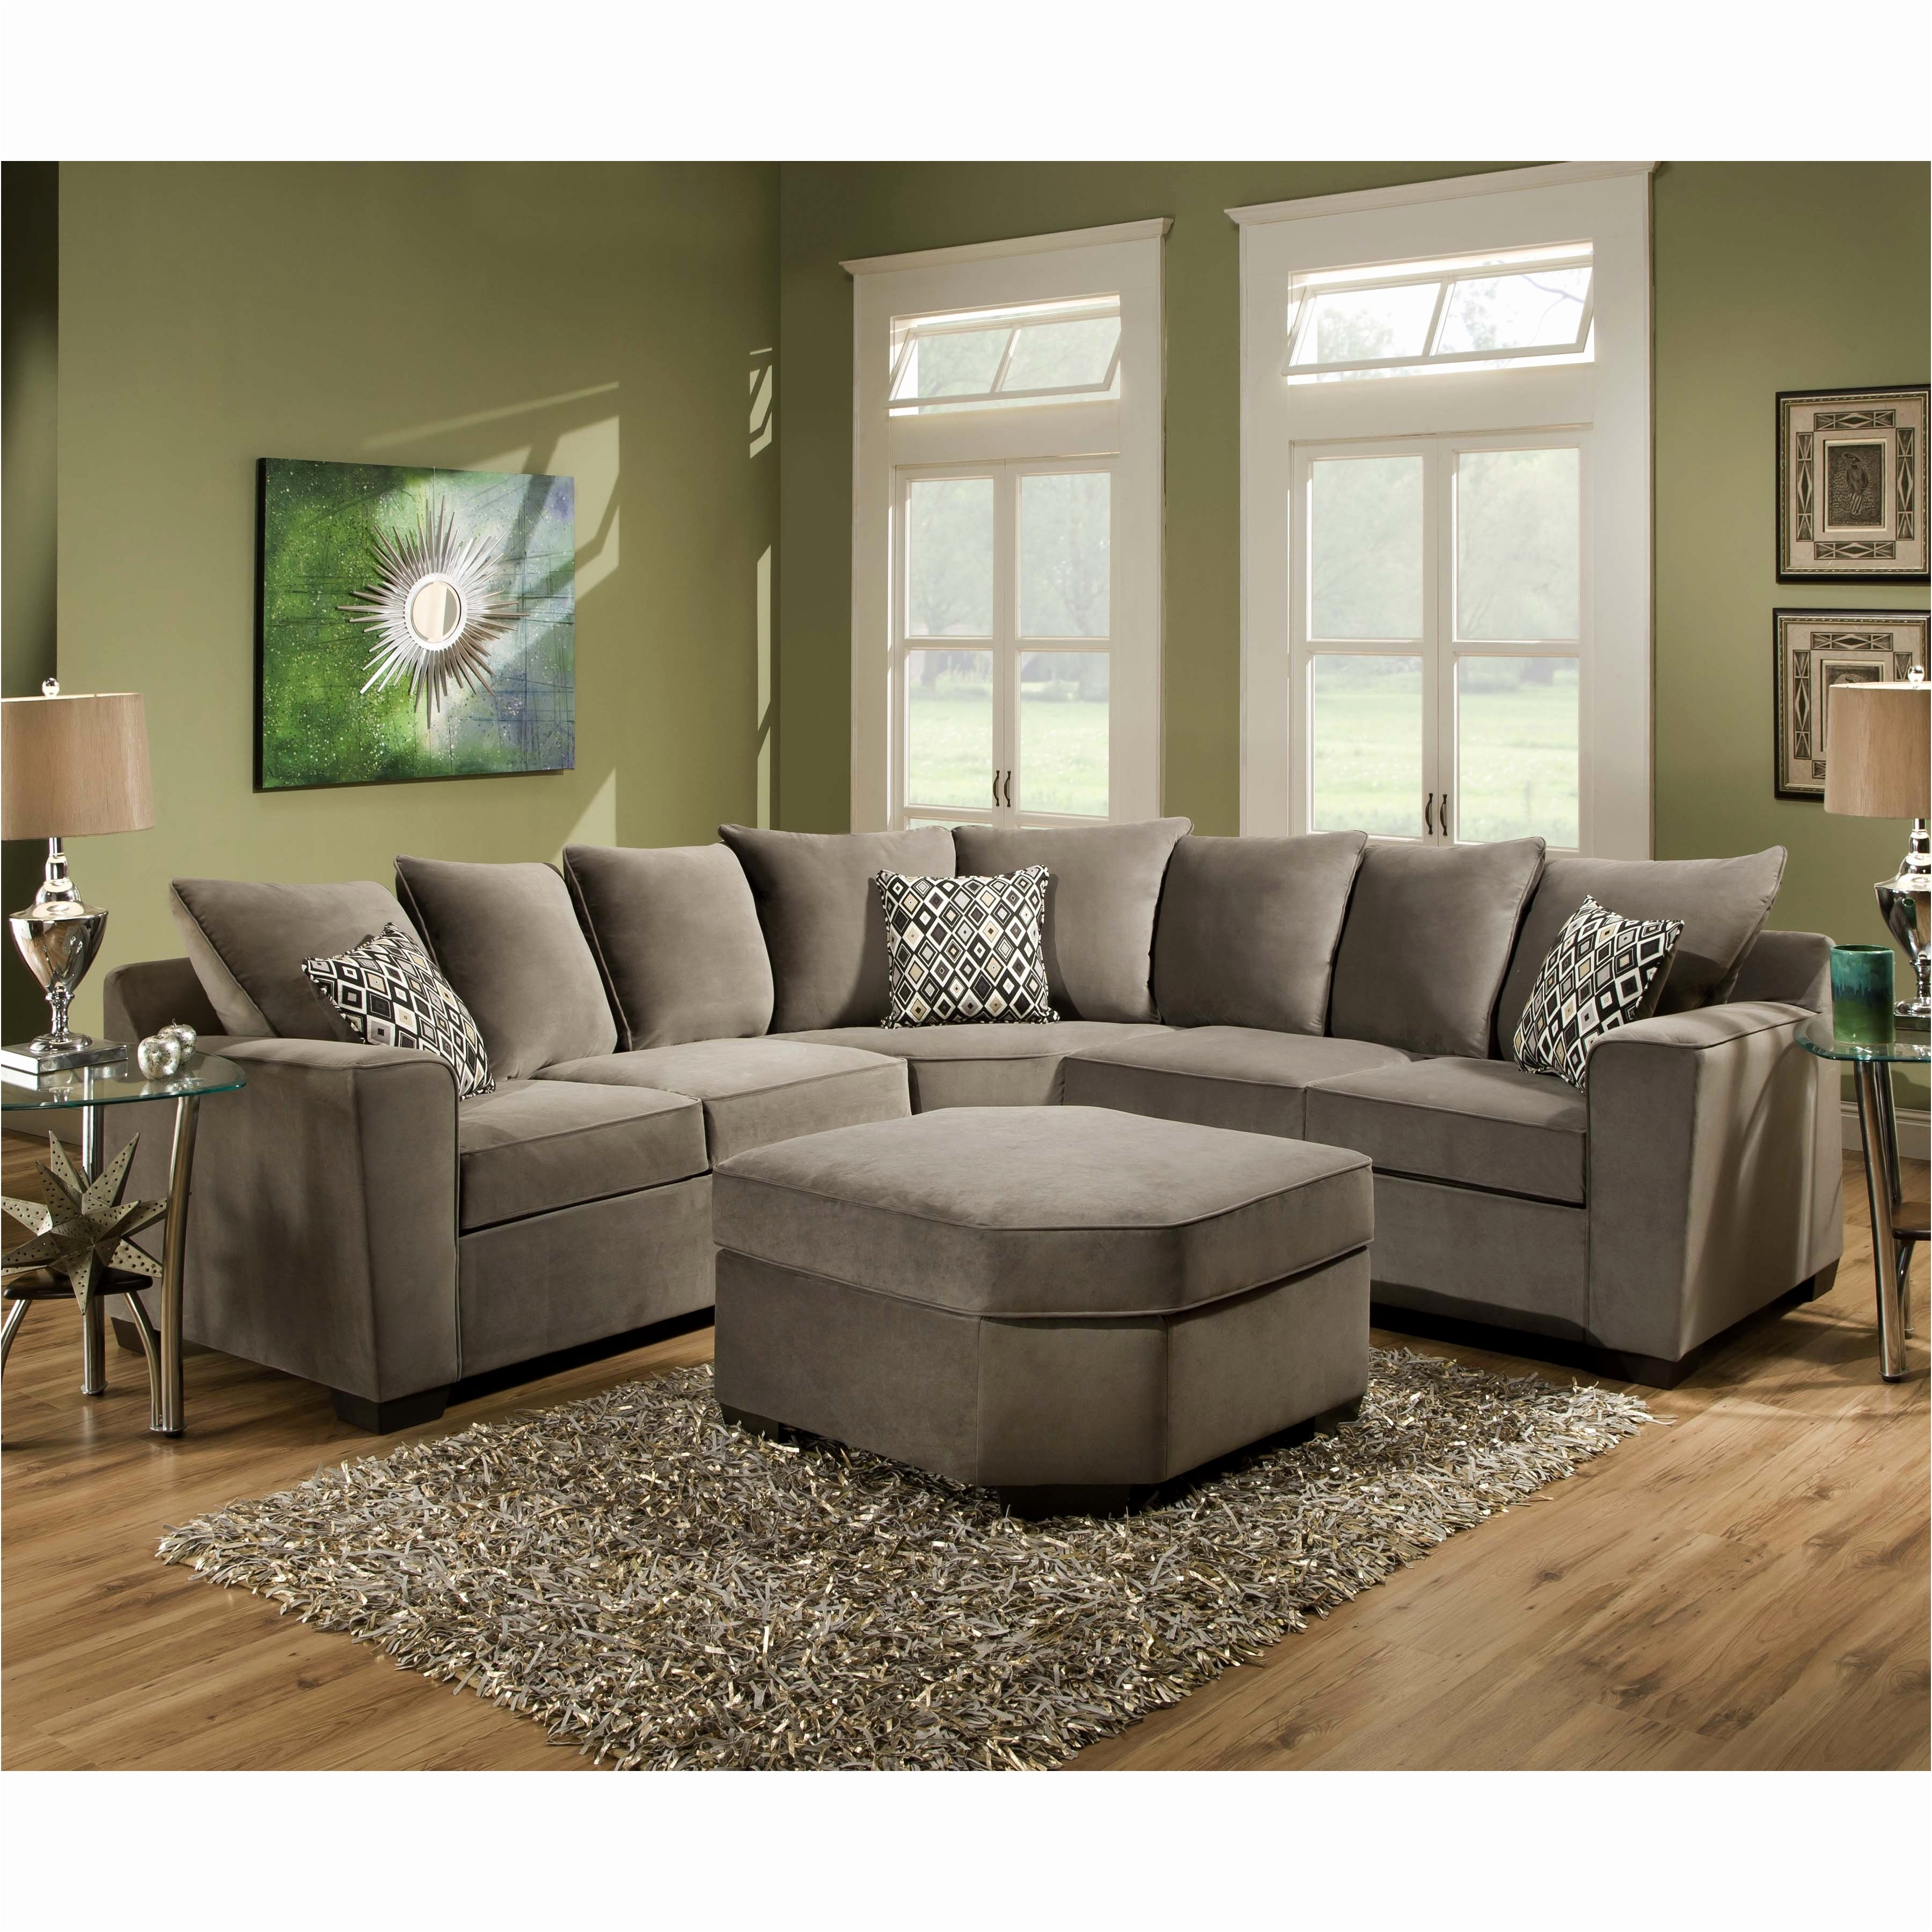 20 Collection of Des Moines Ia Sectional Sofas